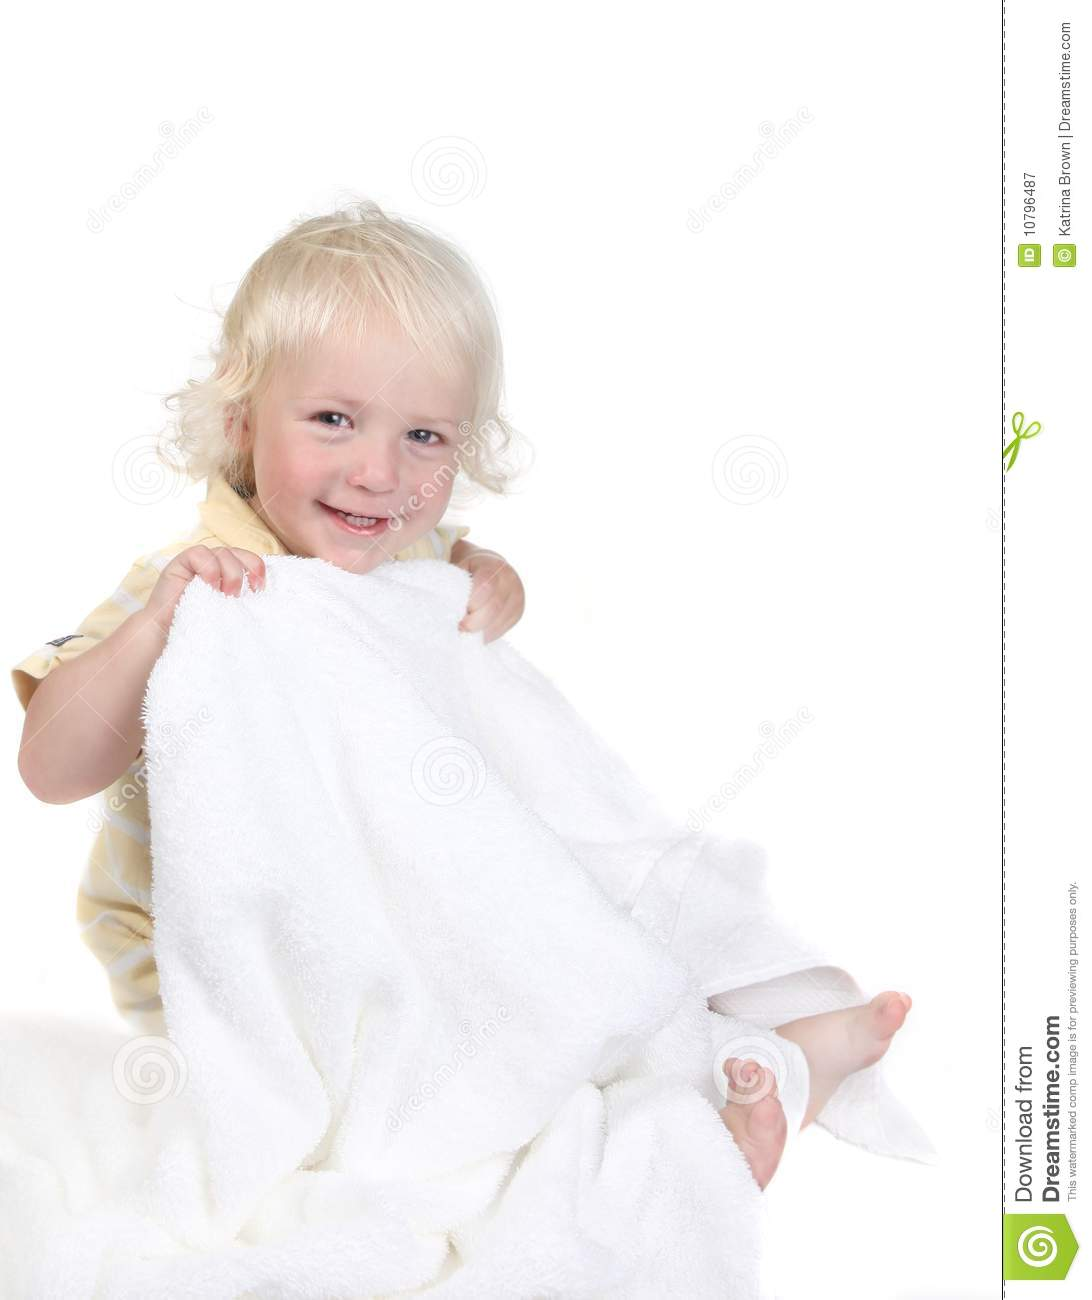 Playful Kid Holding a Bath Towel Smiling